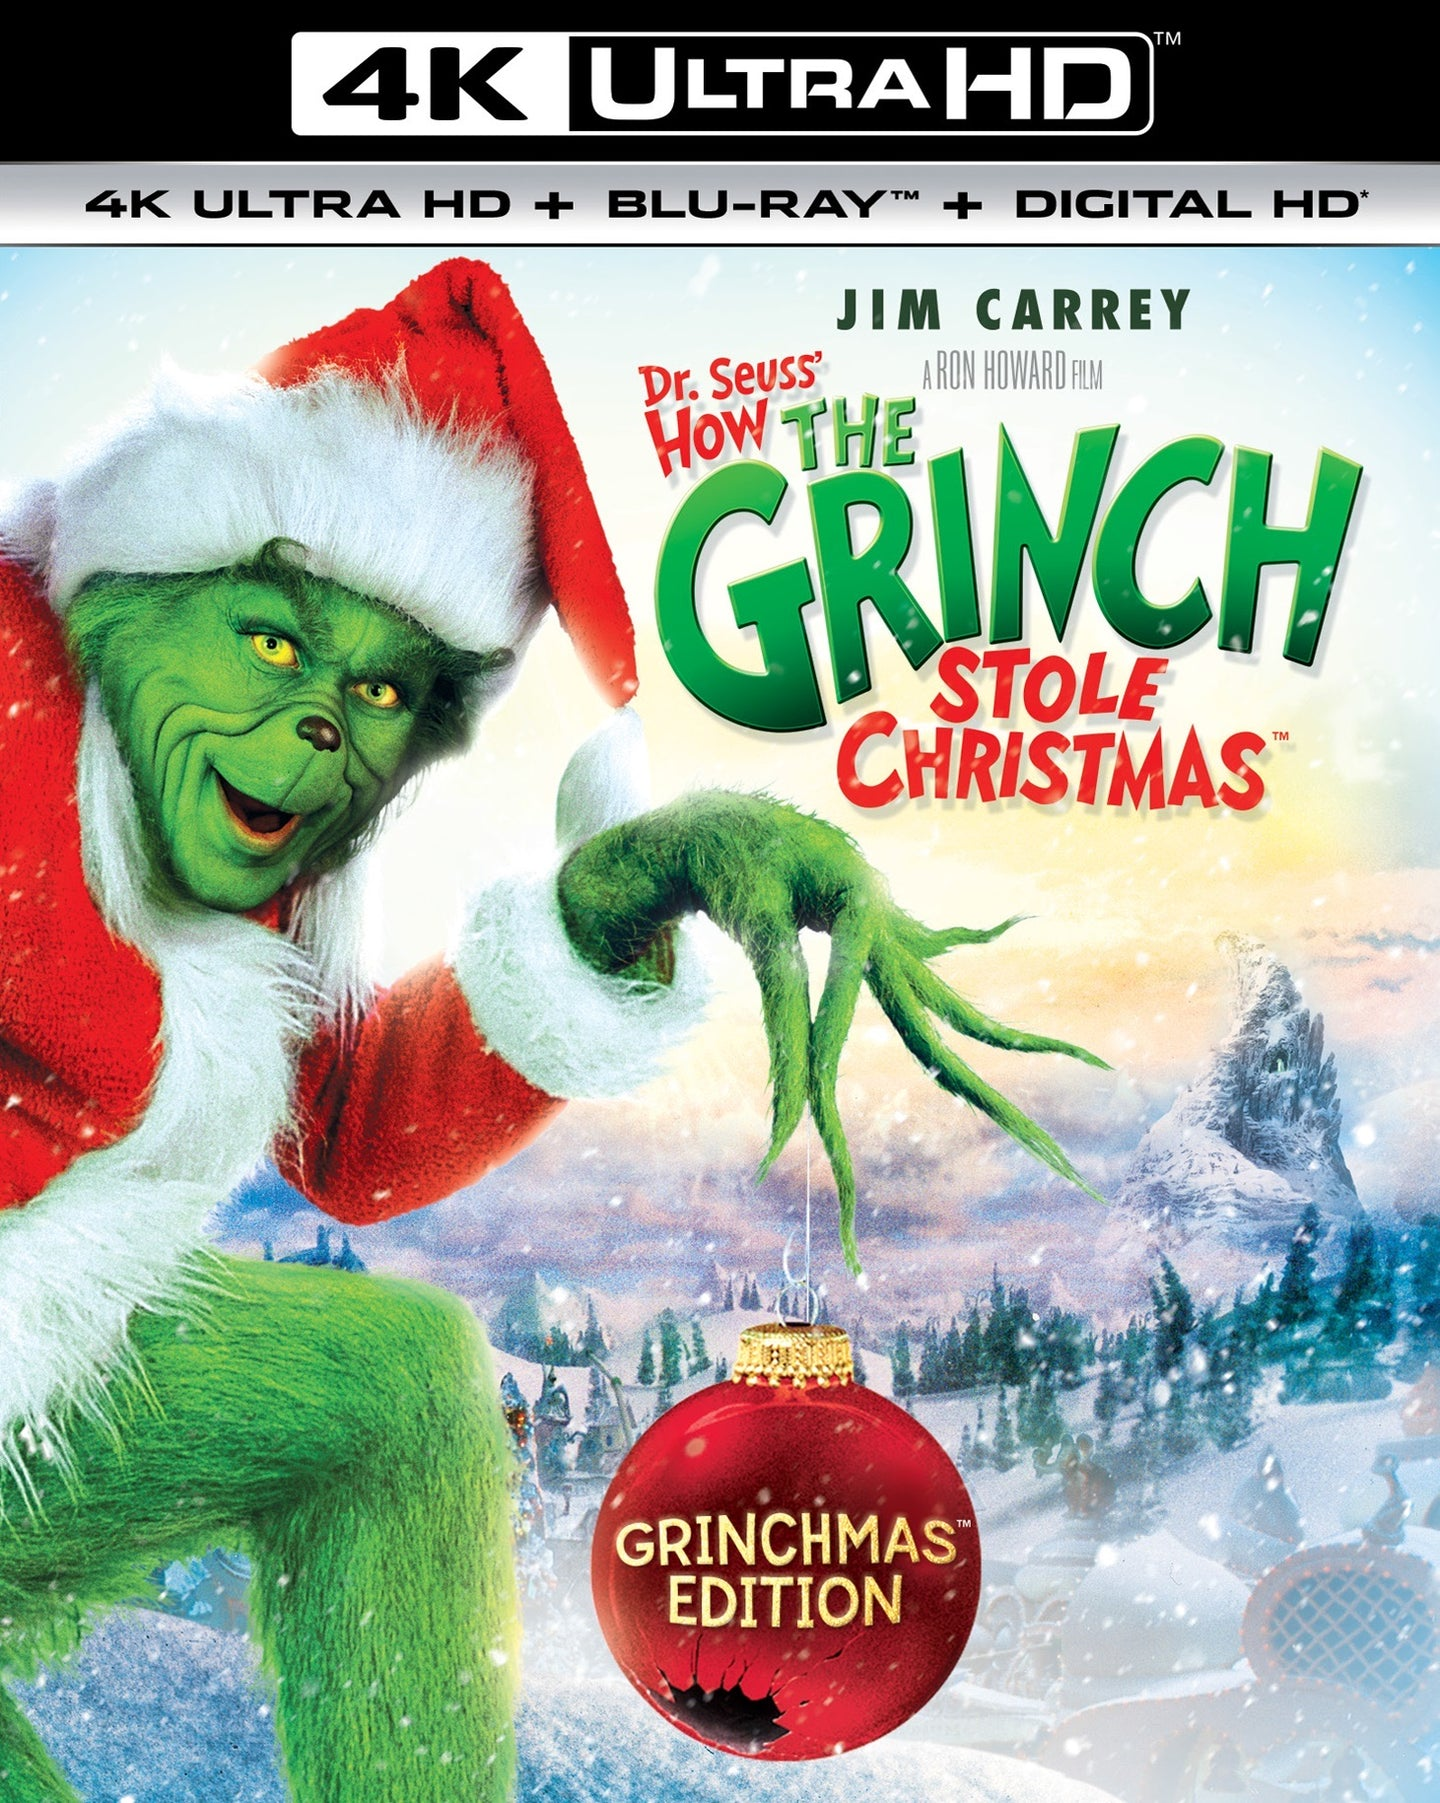 Dr. Seuss' How The Grinch Stole Christmas iTunes 4K redemption only